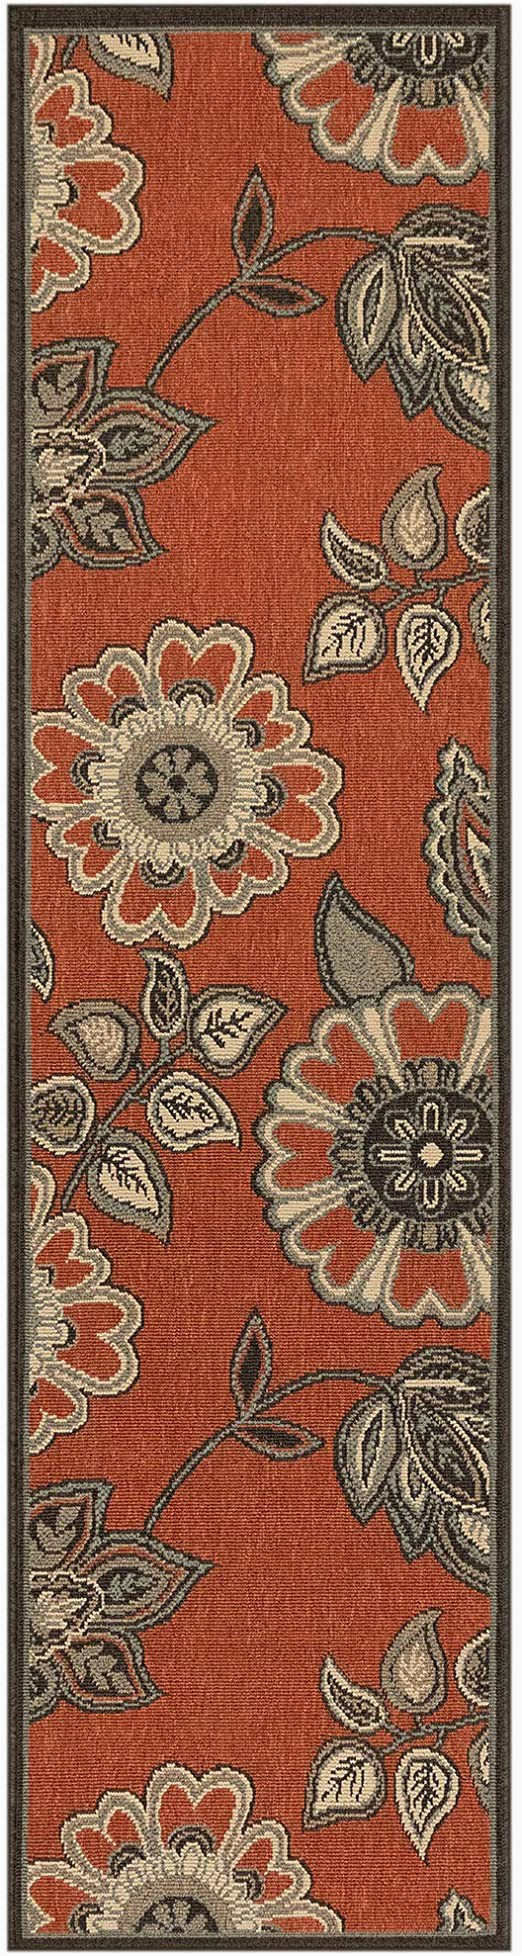 "Riviera Home Retro Bath Rug Liora Manne Riviera Modern foral Tile Indoor Outdoor Rug Vine 23"" X 7 6"" Red"